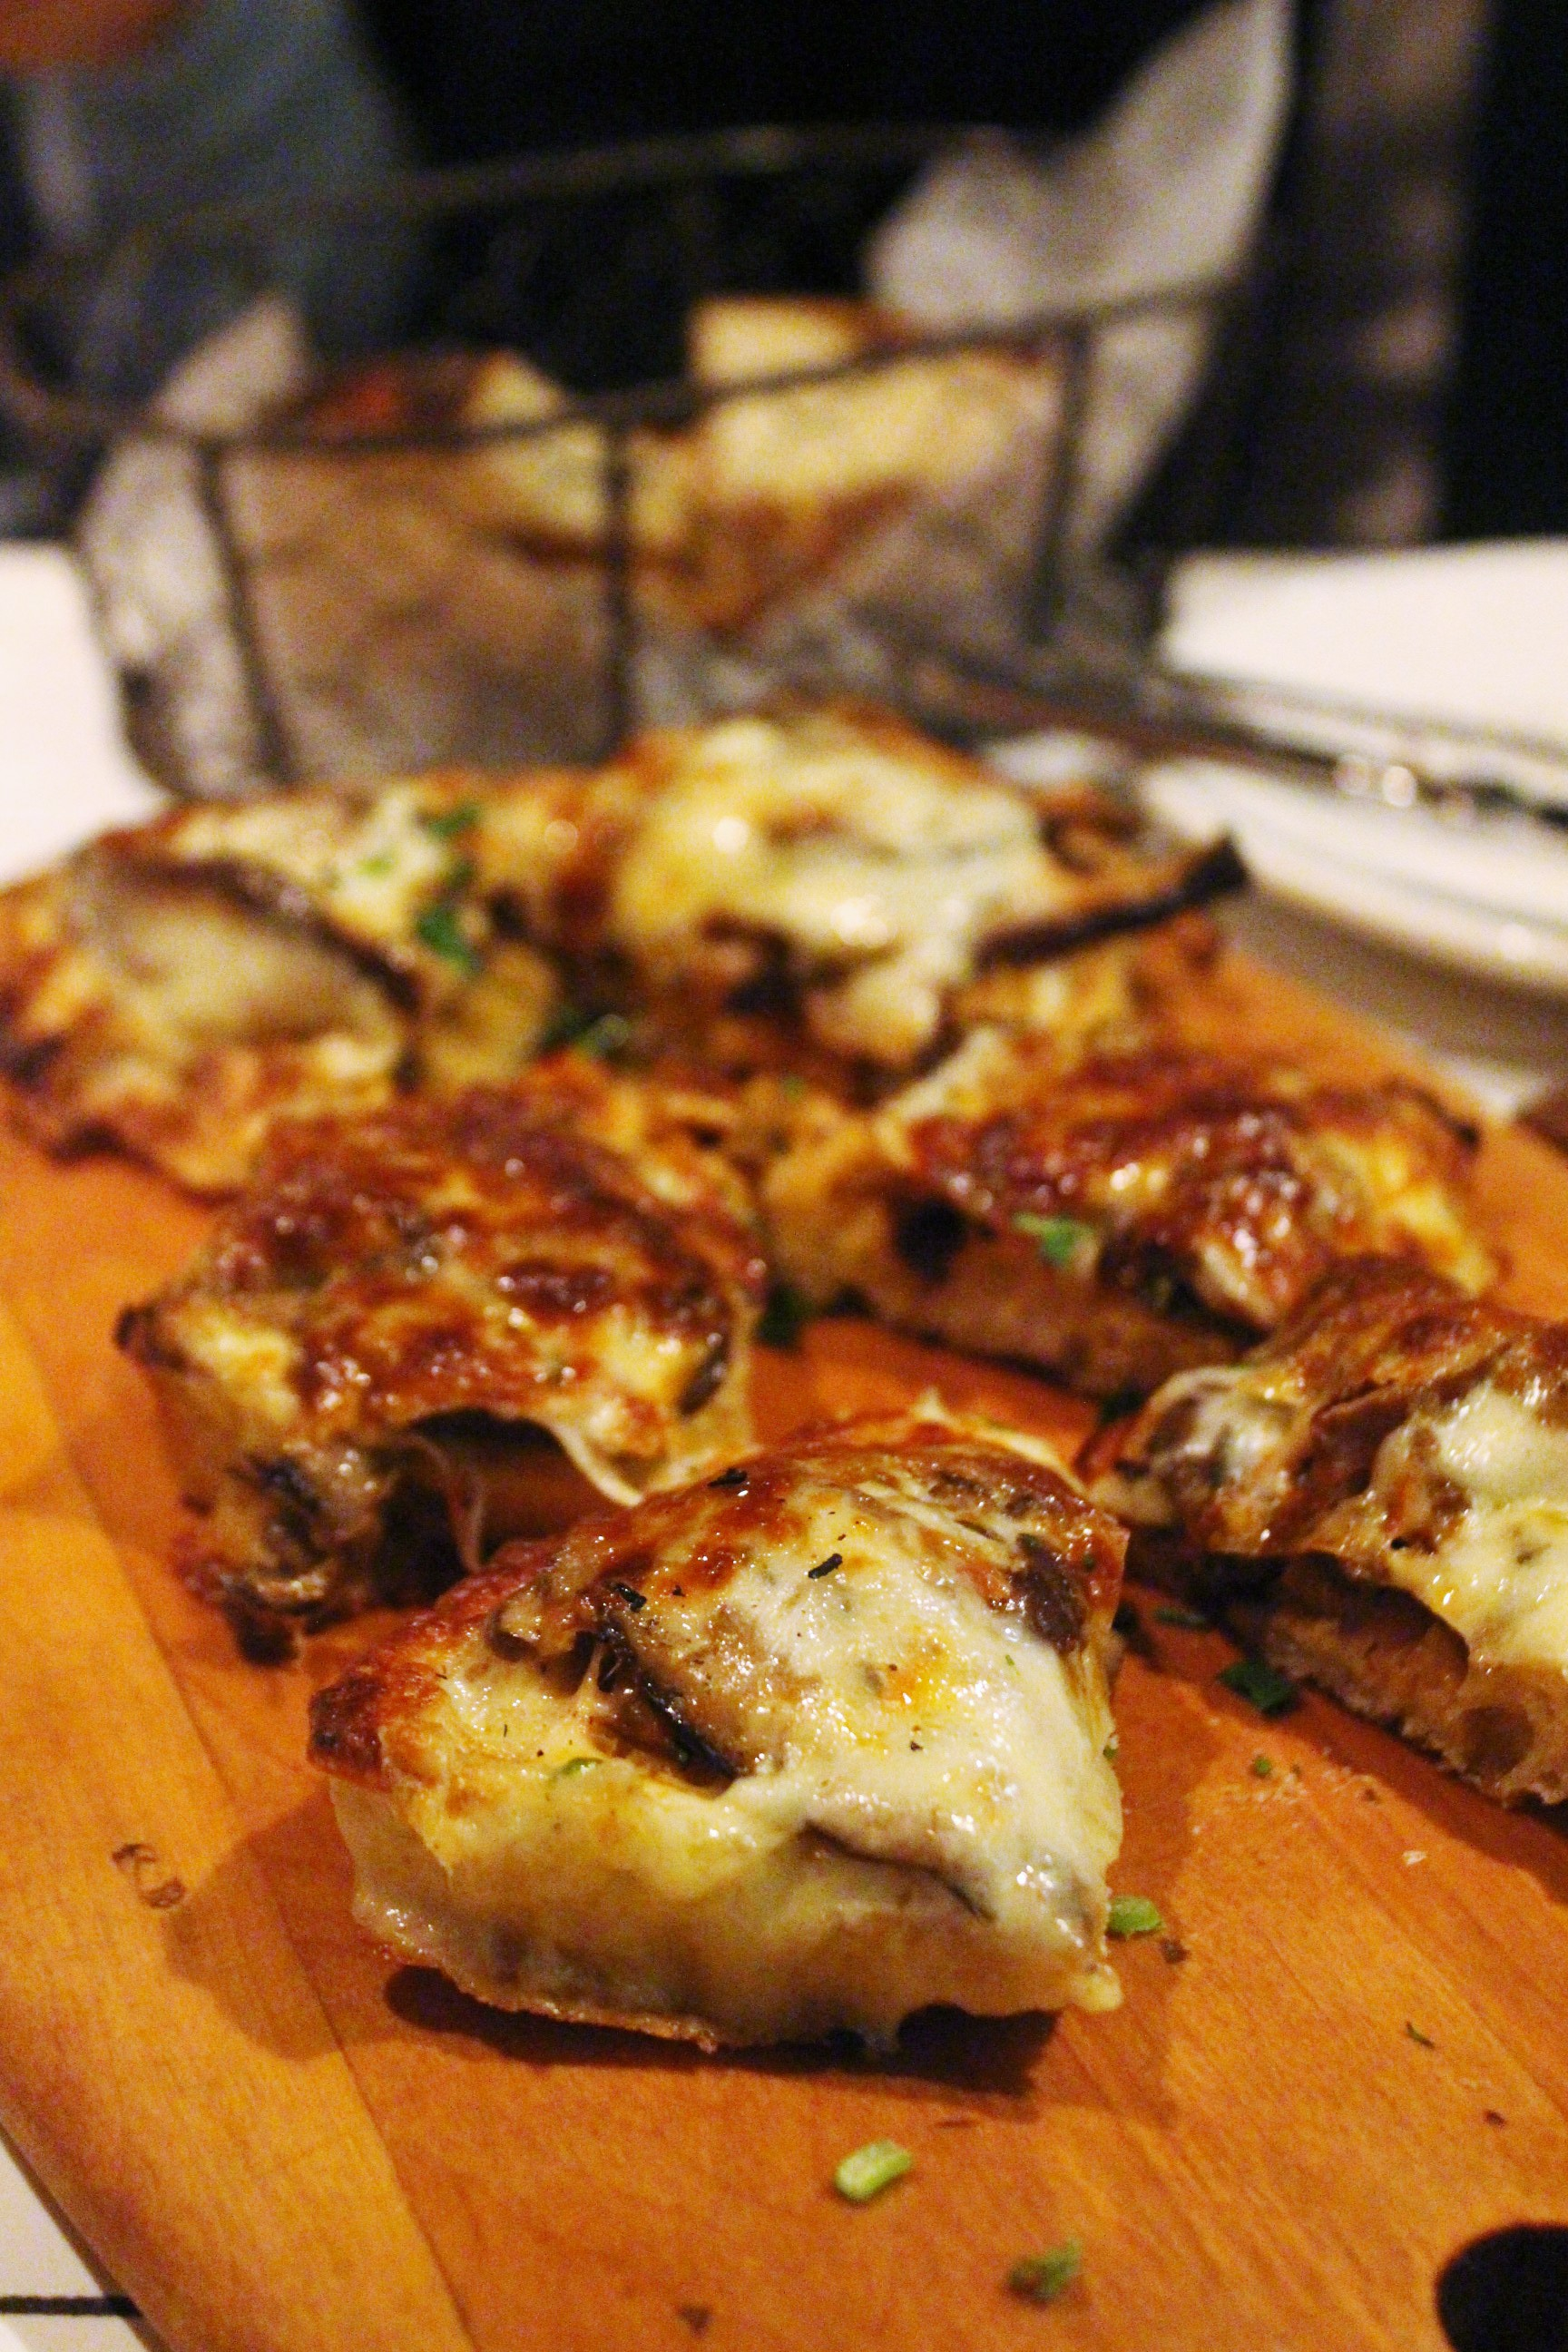 Bruschetta Funghi e Montasio: Mushroom Bruschetta with Montasio Cheese